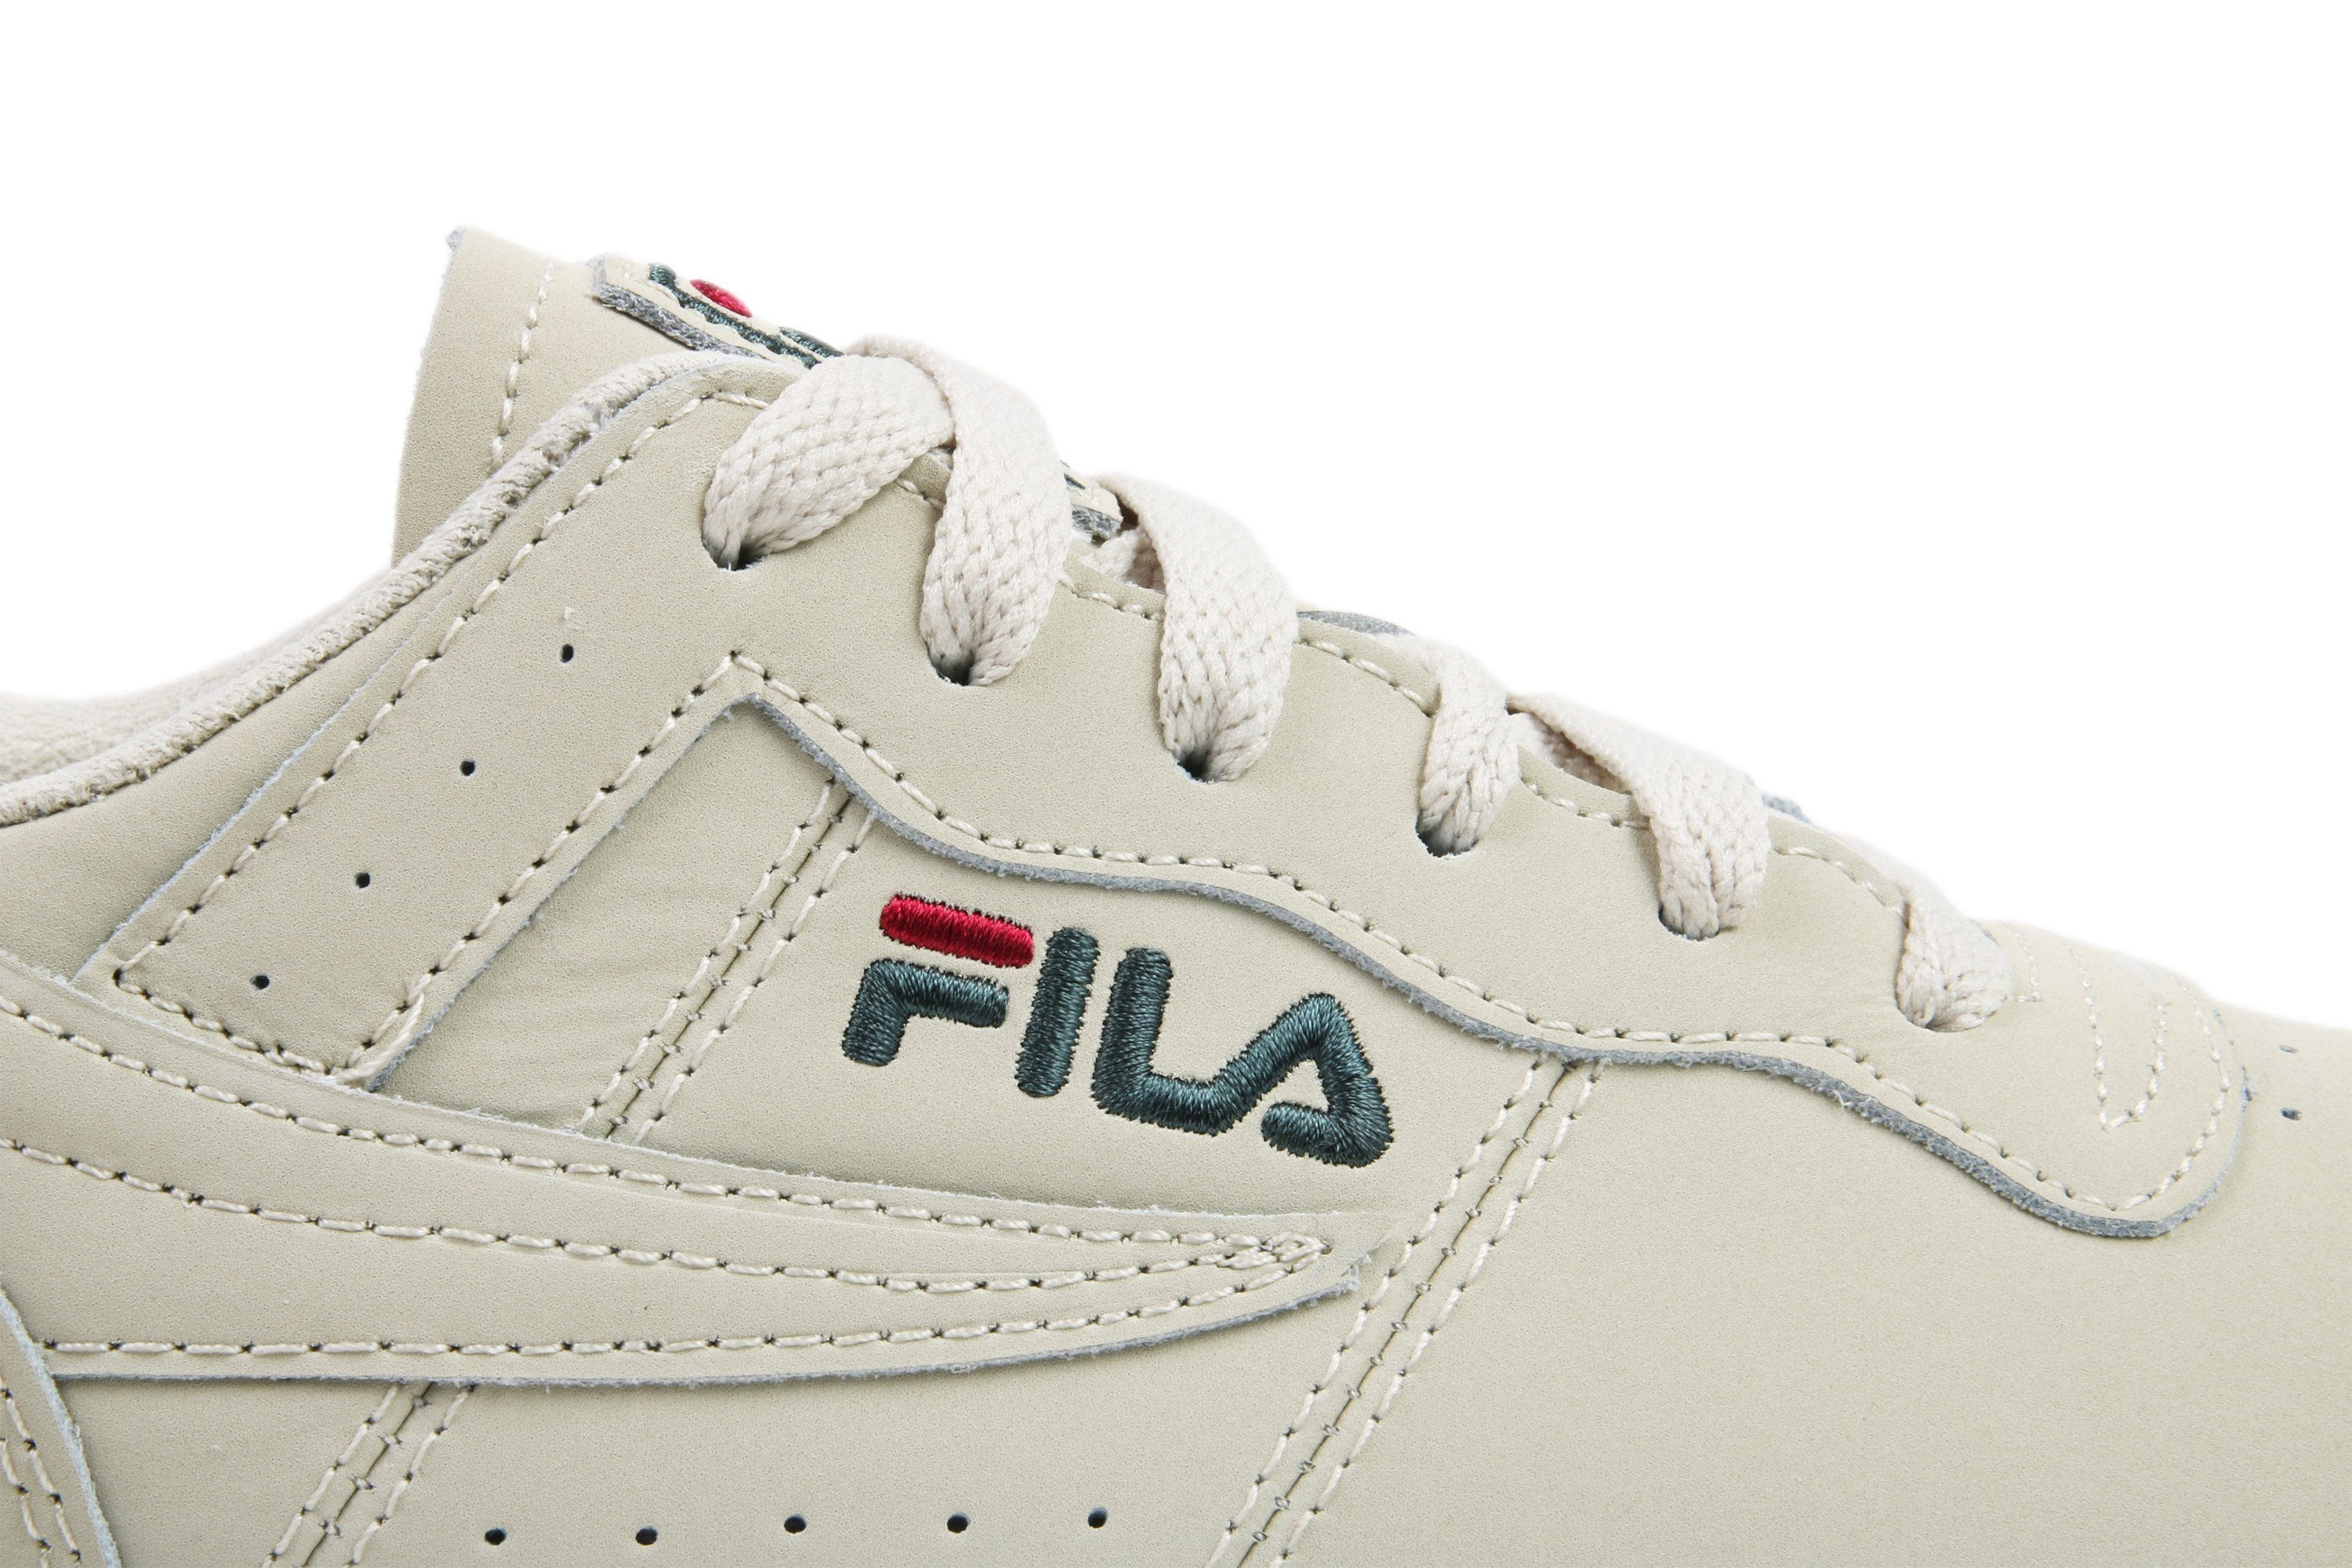 ORIGINAL FITNESS PREMIUM MENS FOOTWEAR FILA